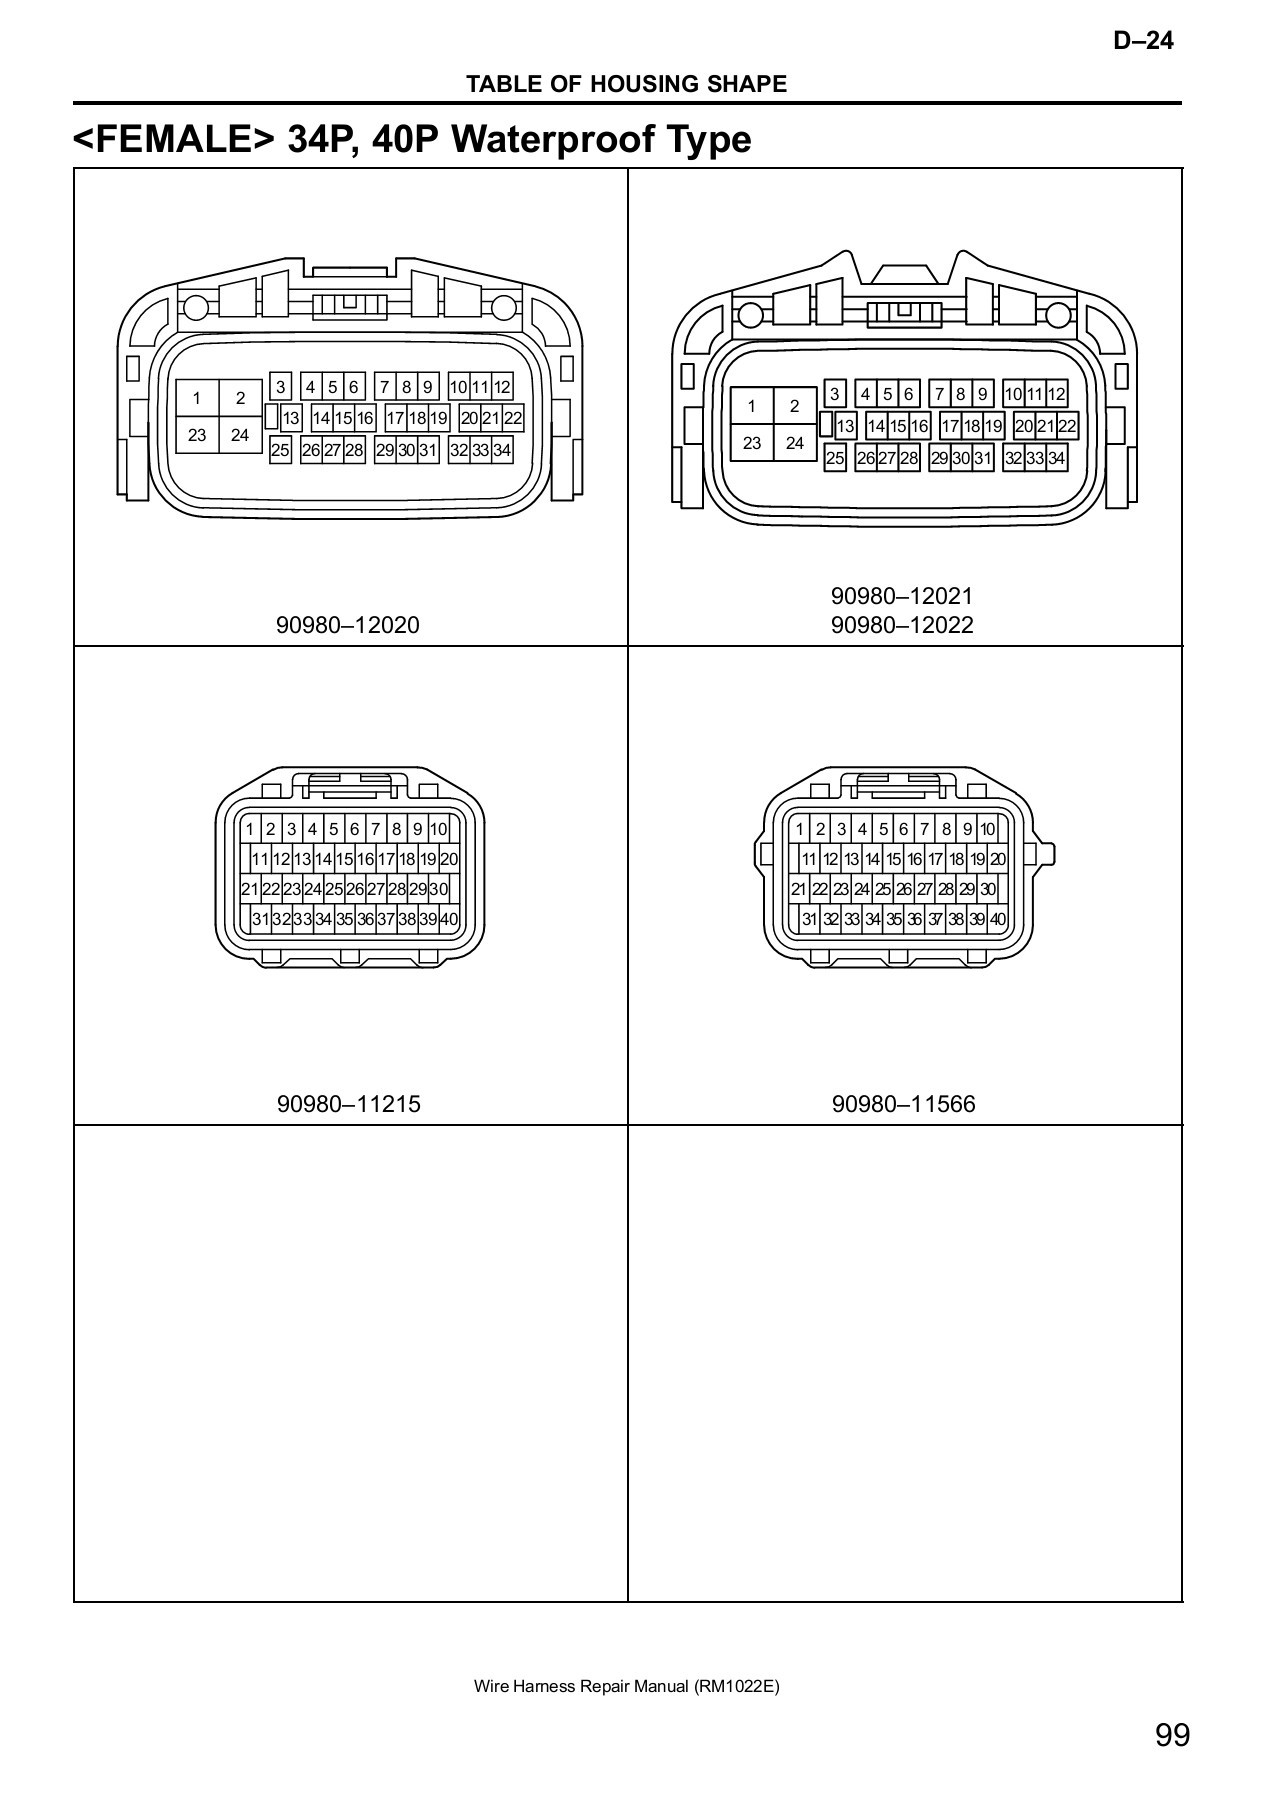 small resolution of toyota wiring repair manual pdfdrive com pages 101 150 text version fliphtml5